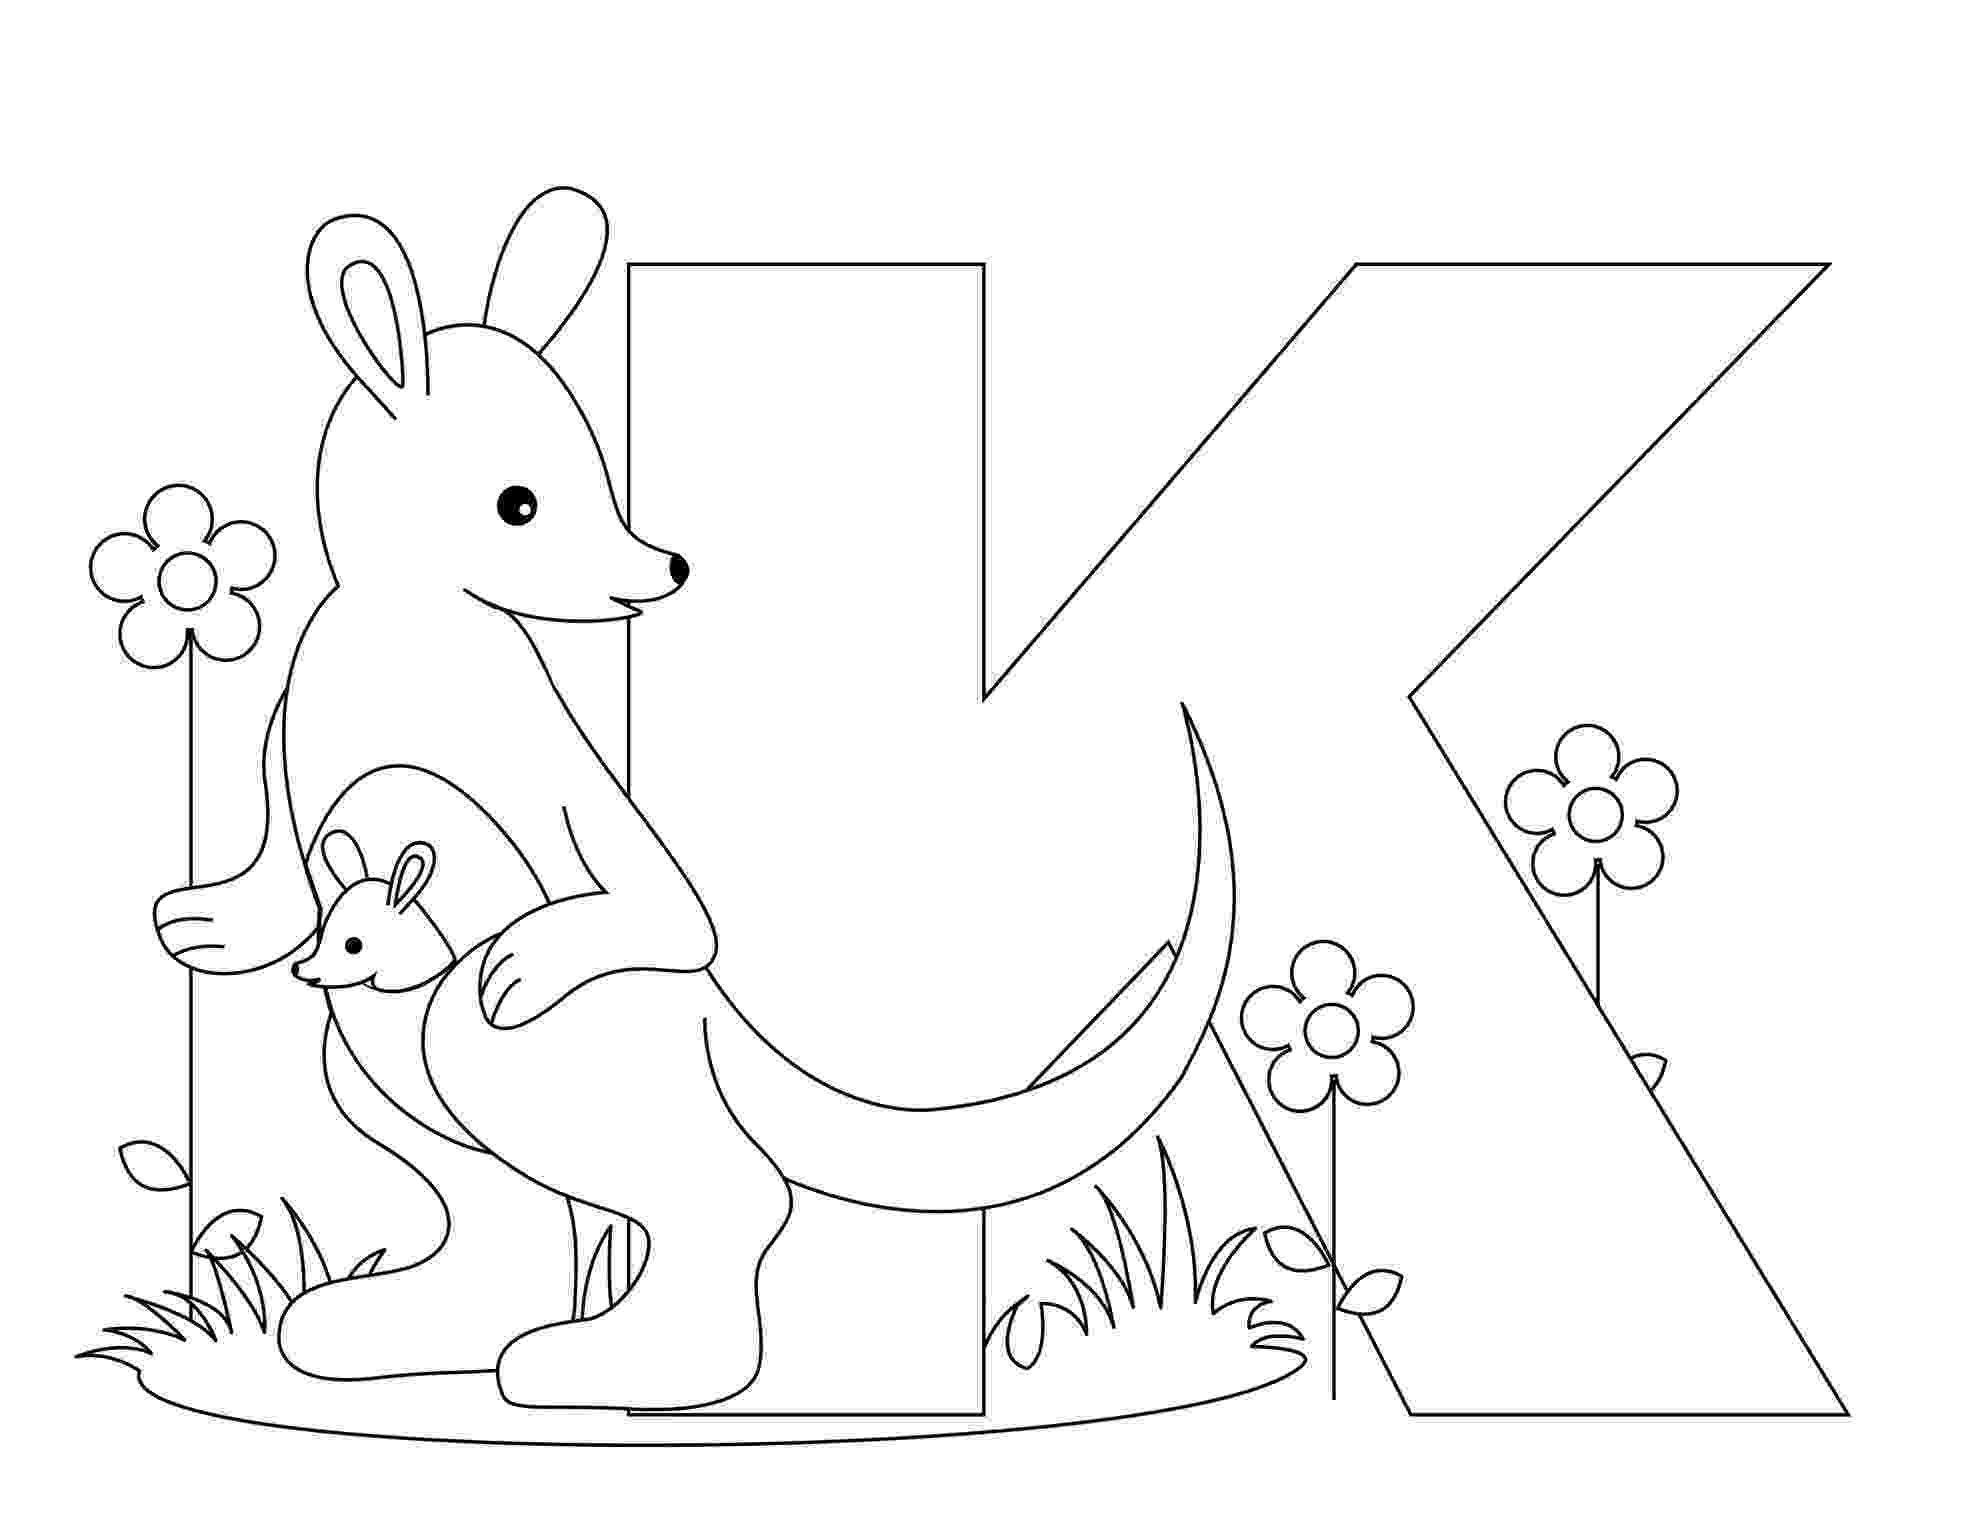 coloring alphabet letters free printable alphabet coloring pages for kids best letters alphabet coloring 1 4